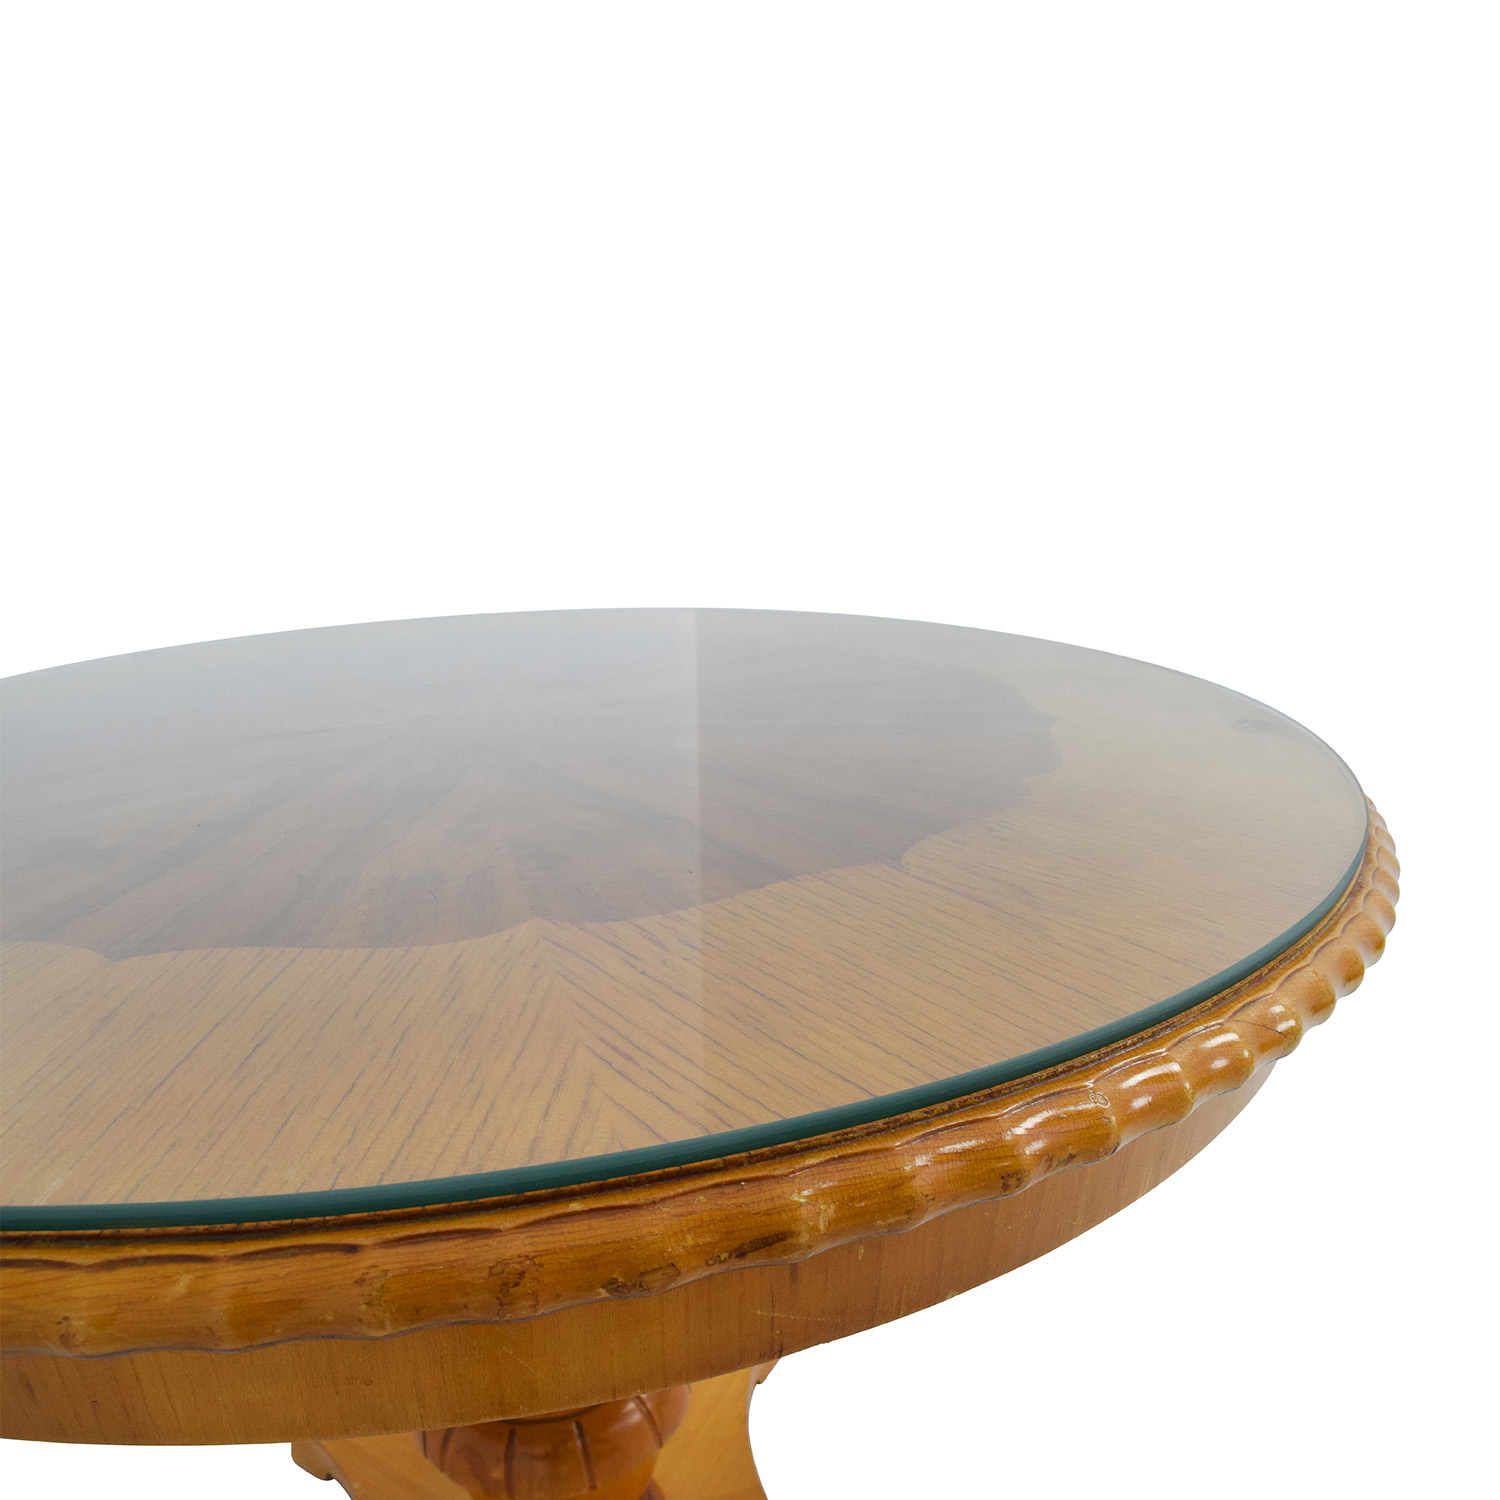 86 off antique round wood dining table with glass top tables. Black Bedroom Furniture Sets. Home Design Ideas